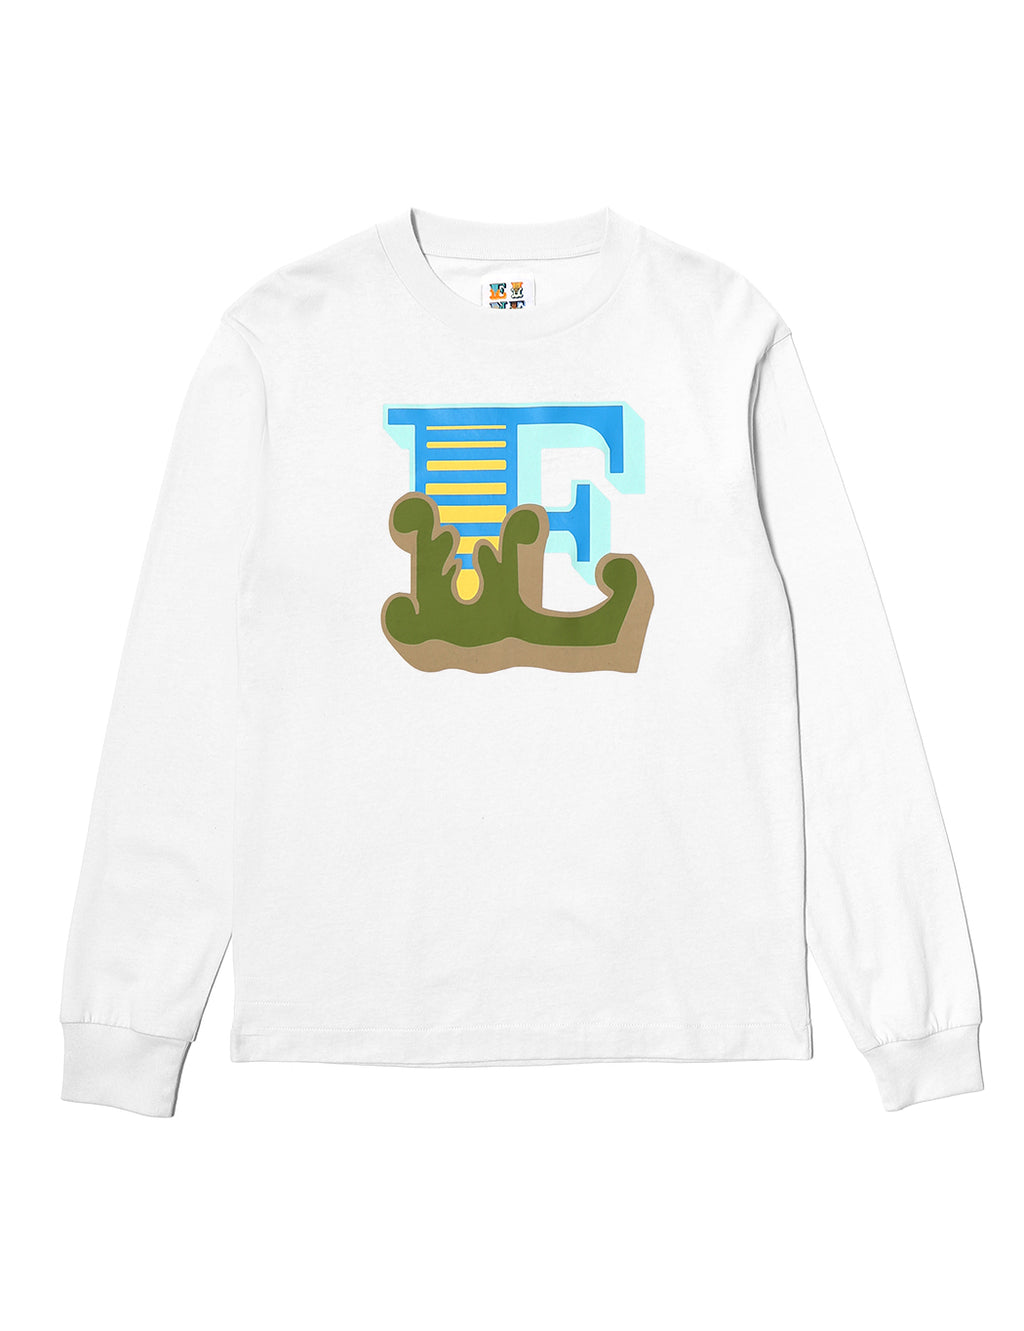 Circus E L/S T-Shirt - White - Eine London by Ben Eine